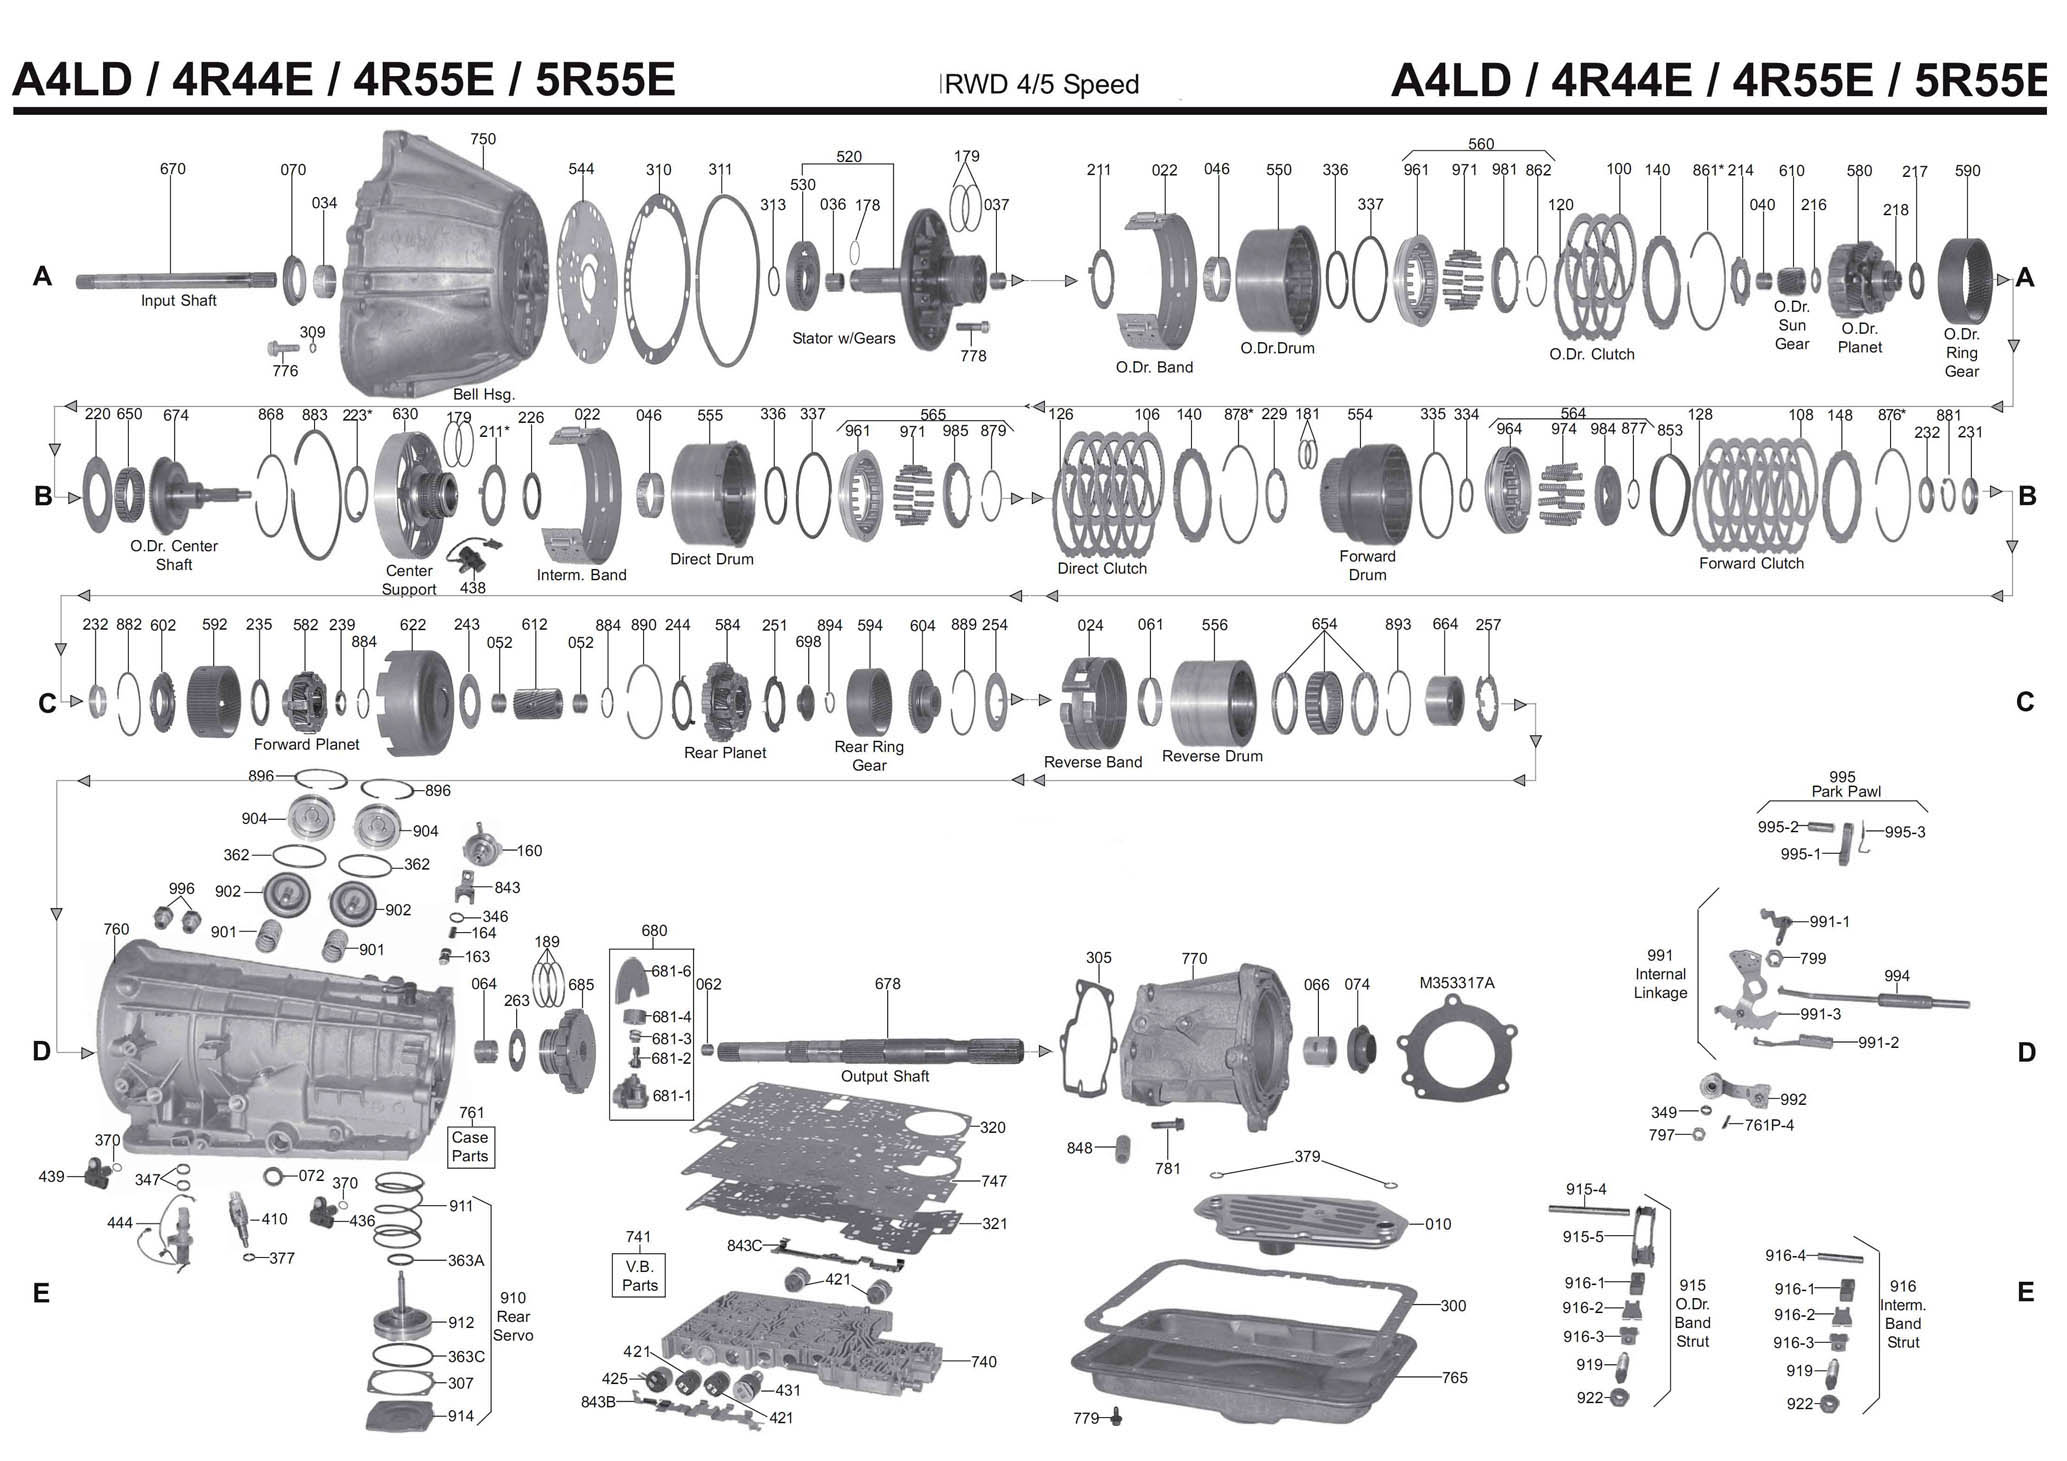 Transmission Repair Manuals A4ld 4r55e   U04213